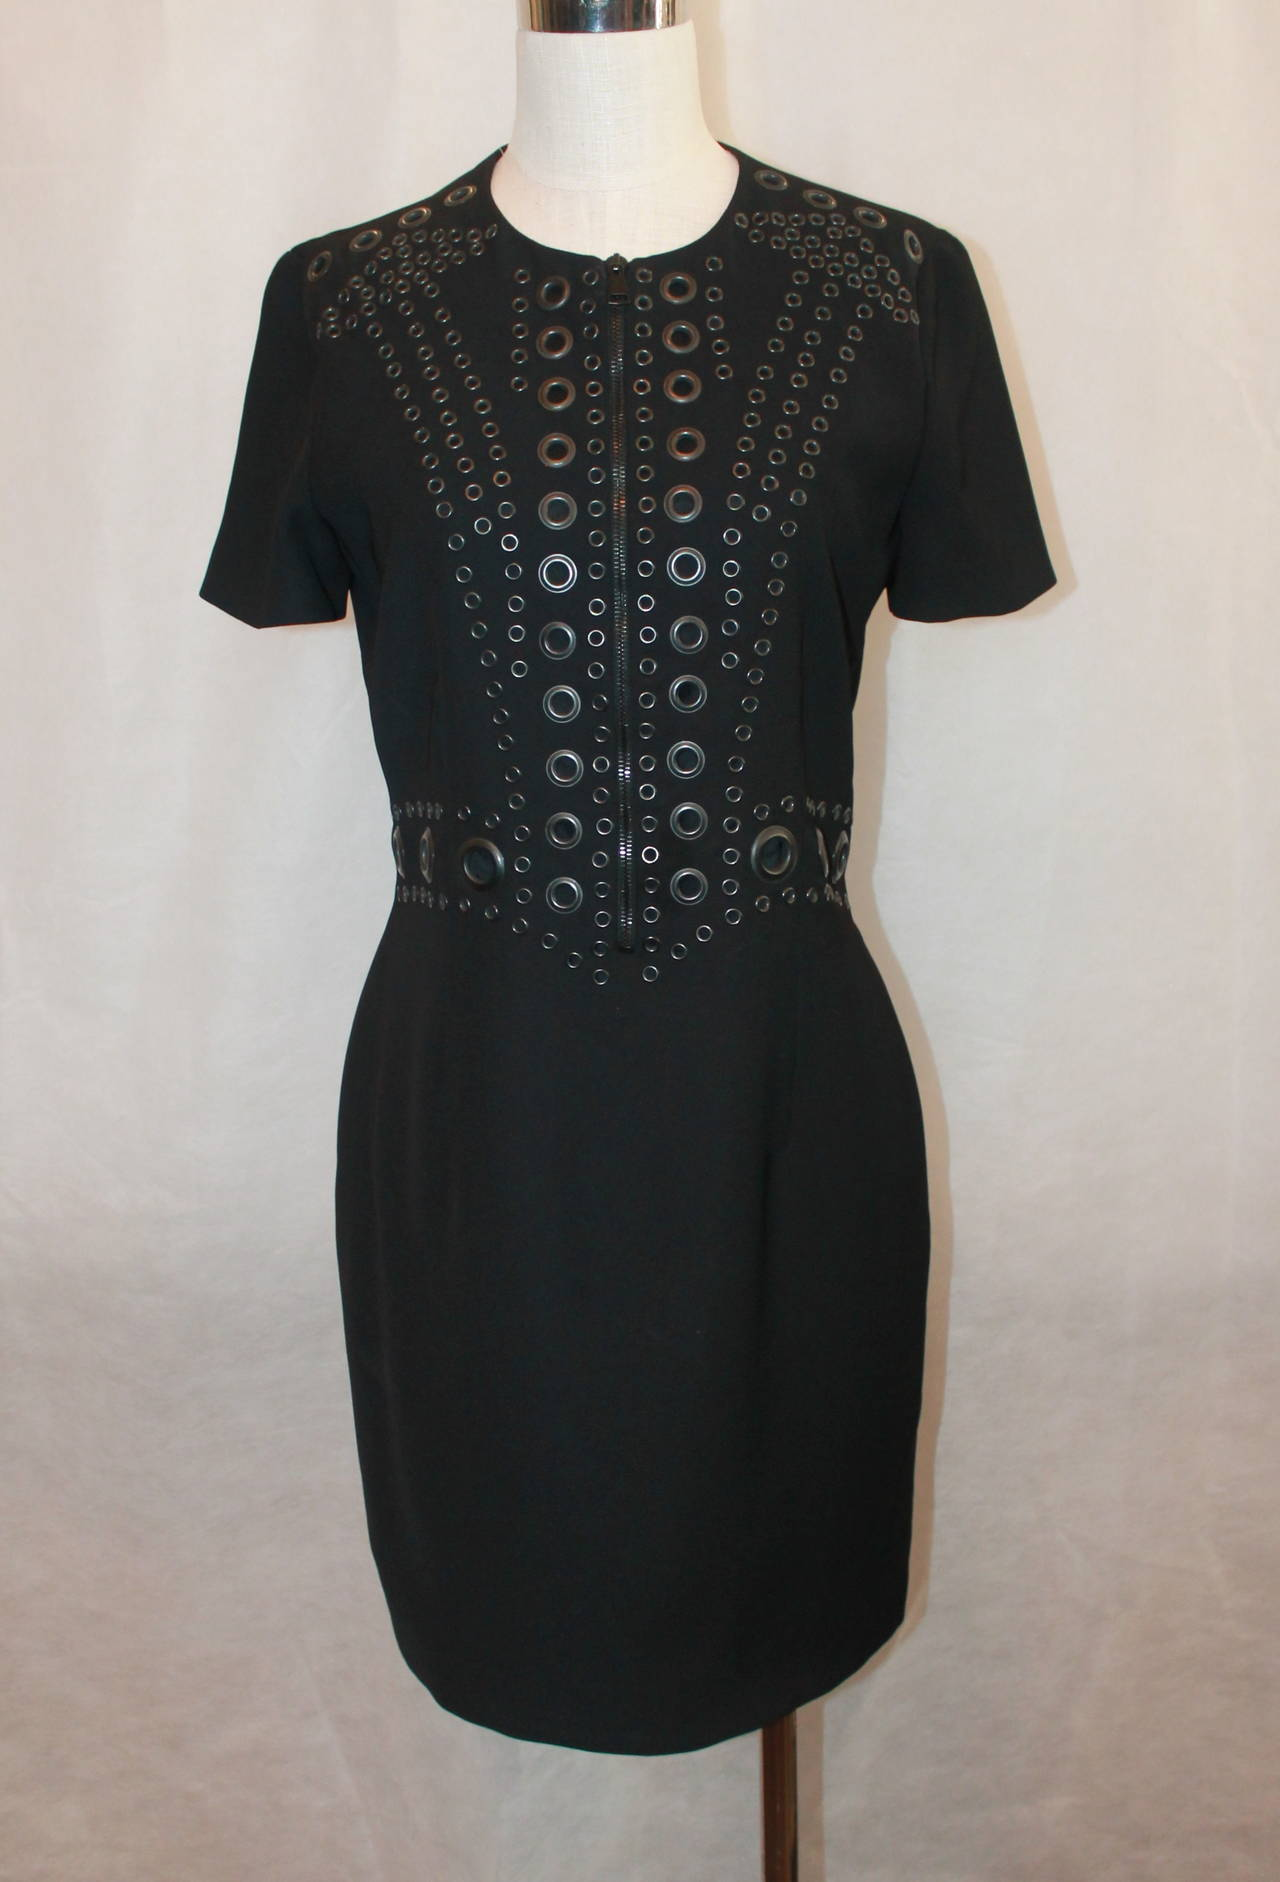 Givenchy Black Tapered Metal Eyelet Dress - 44 For Sale at 1stdibs